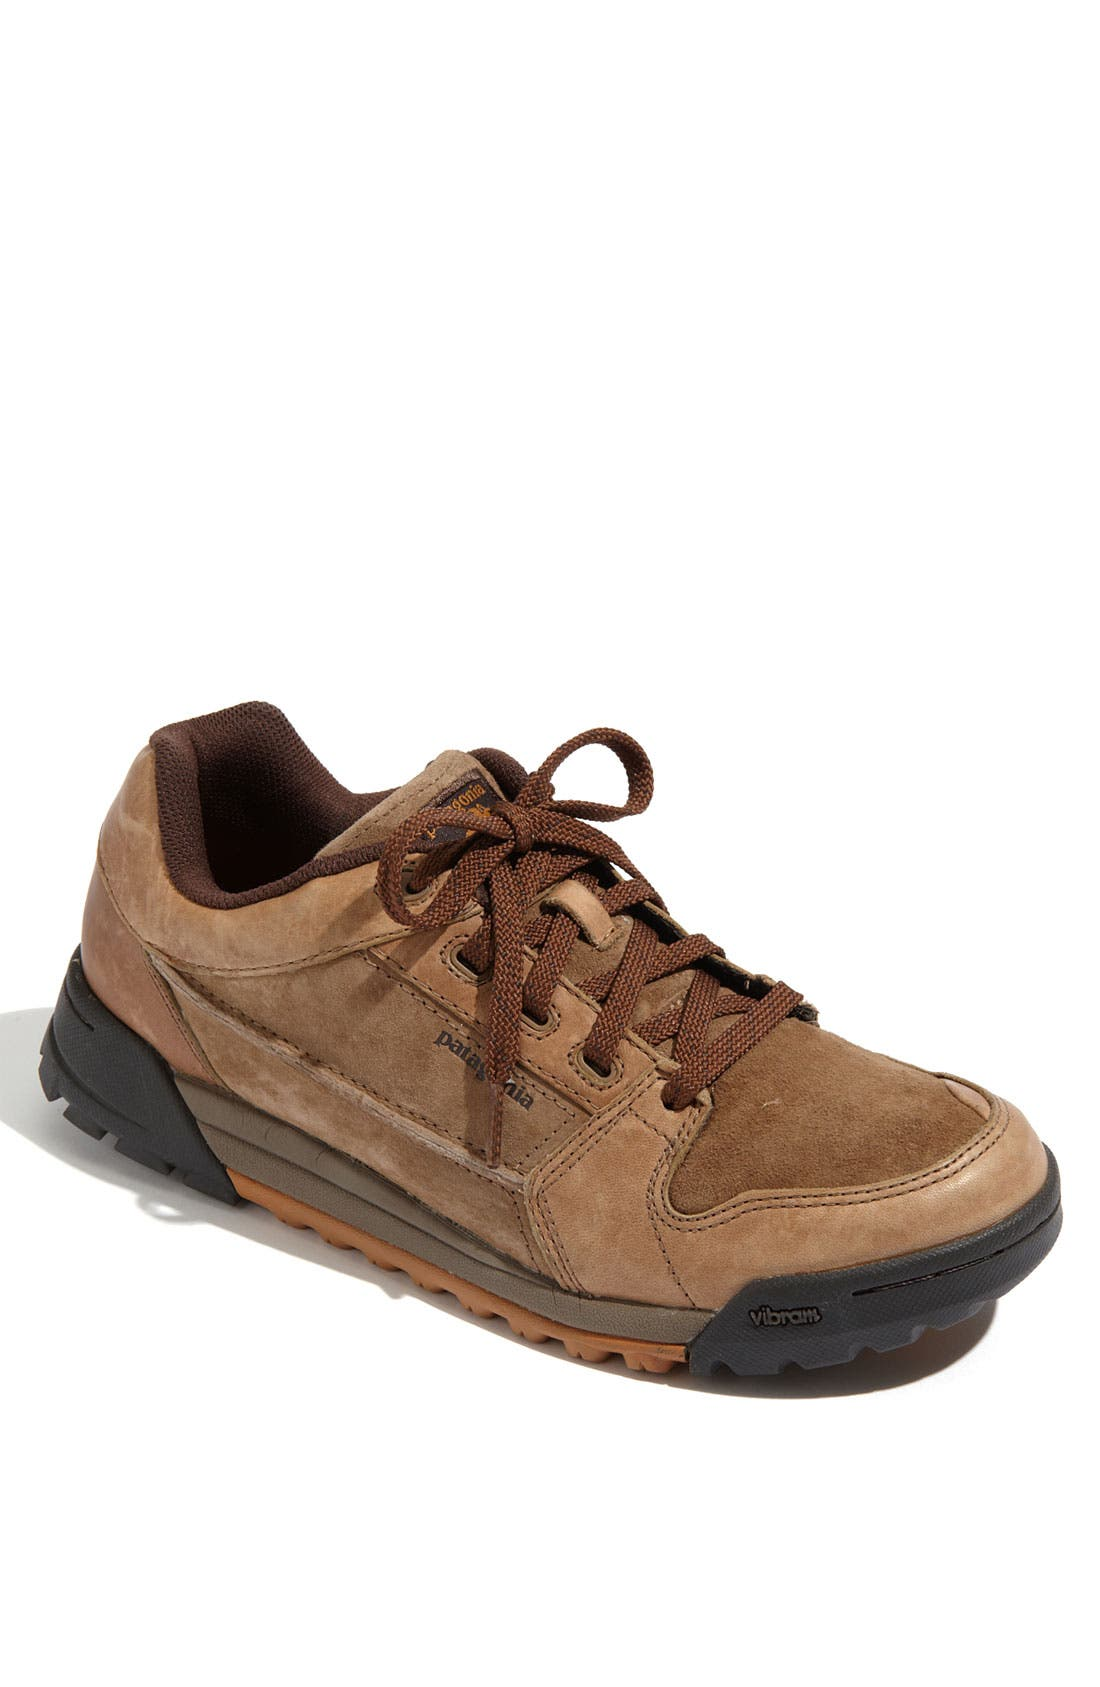 Alternate Image 1 Selected - Patagonia 'Hog Tie' Multi Sport Shoe (Men)